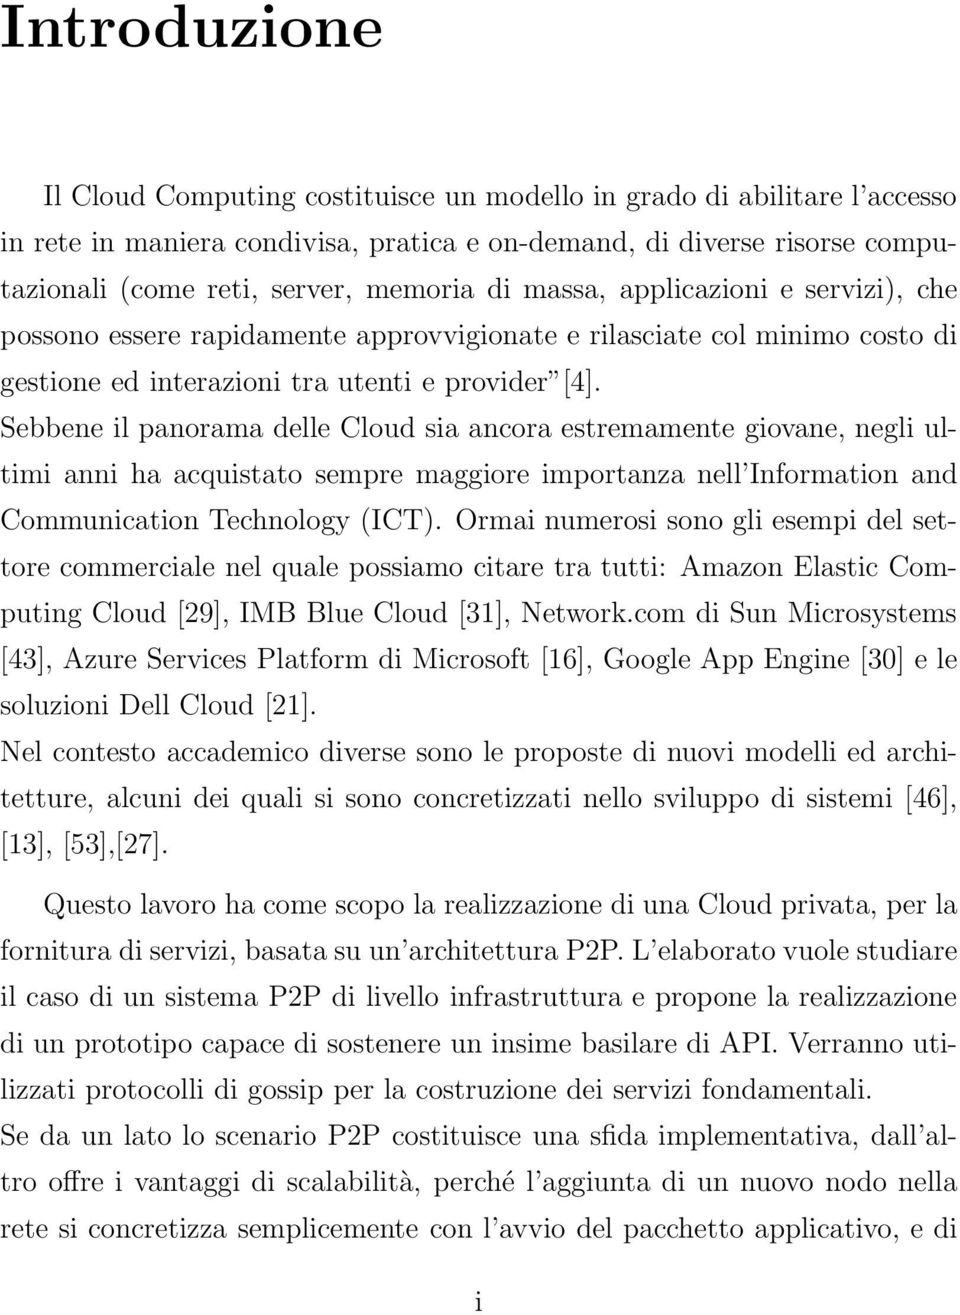 Sebbene il panorama delle Cloud sia ancora estremamente giovane, negli ultimi anni ha acquistato sempre maggiore importanza nell Information and Communication Technology (ICT).